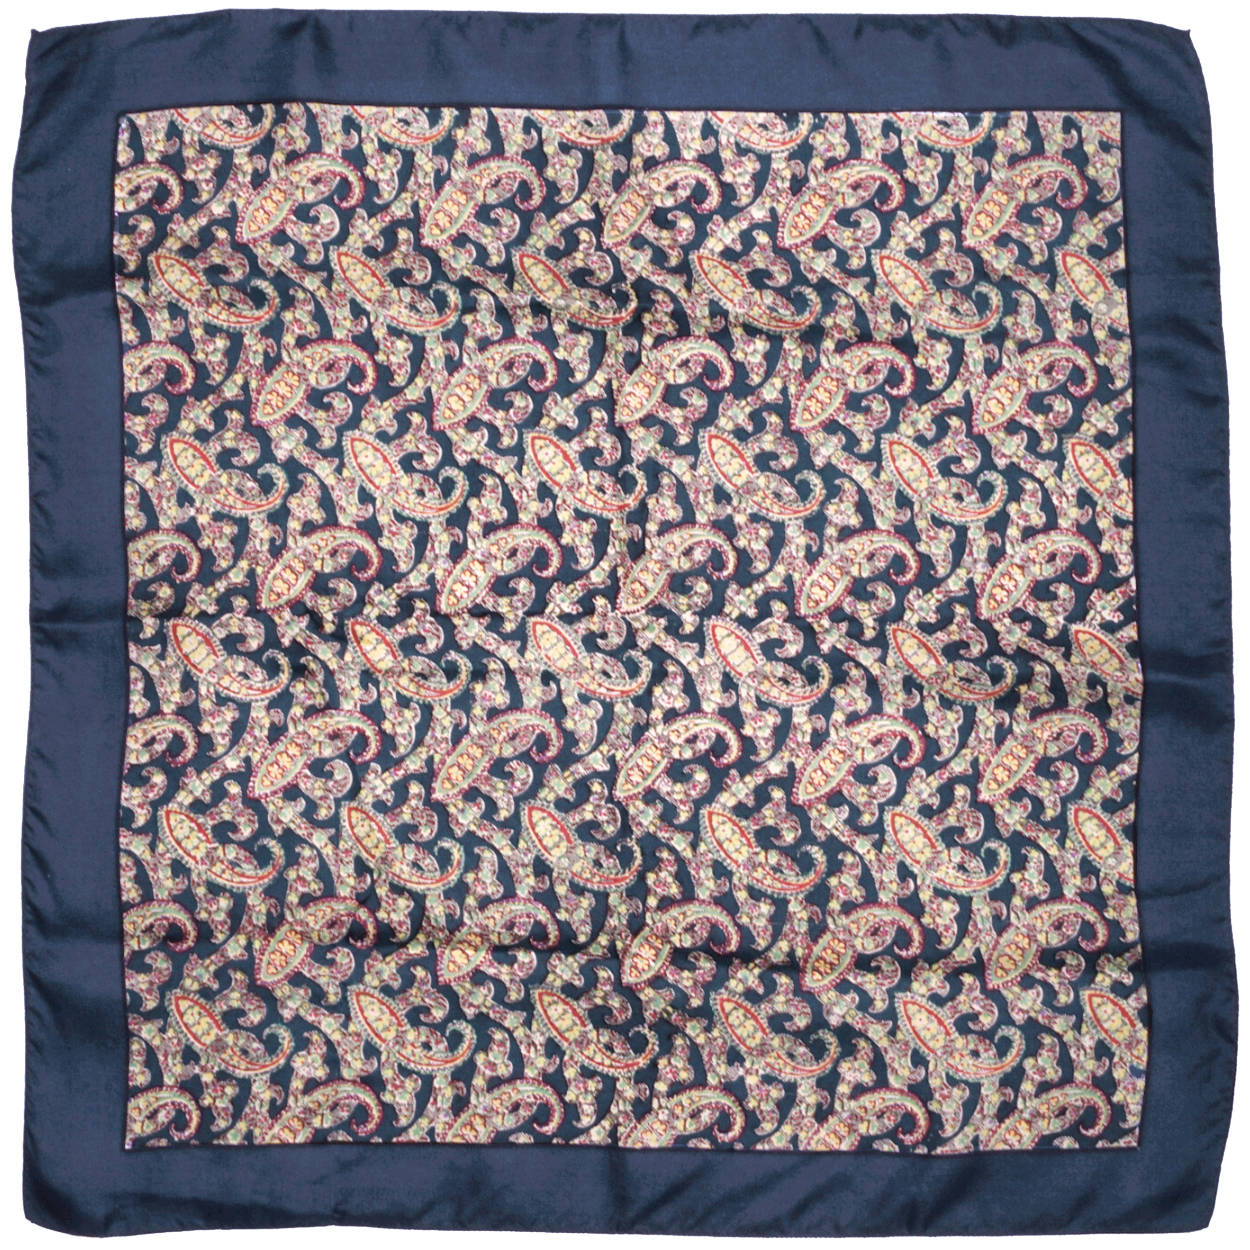 e7274f3f5eecd Vintage 1940s Liberty of London Paisley Silk Scarf Square w Cloth Label -  Poppy's Vintage Clothing